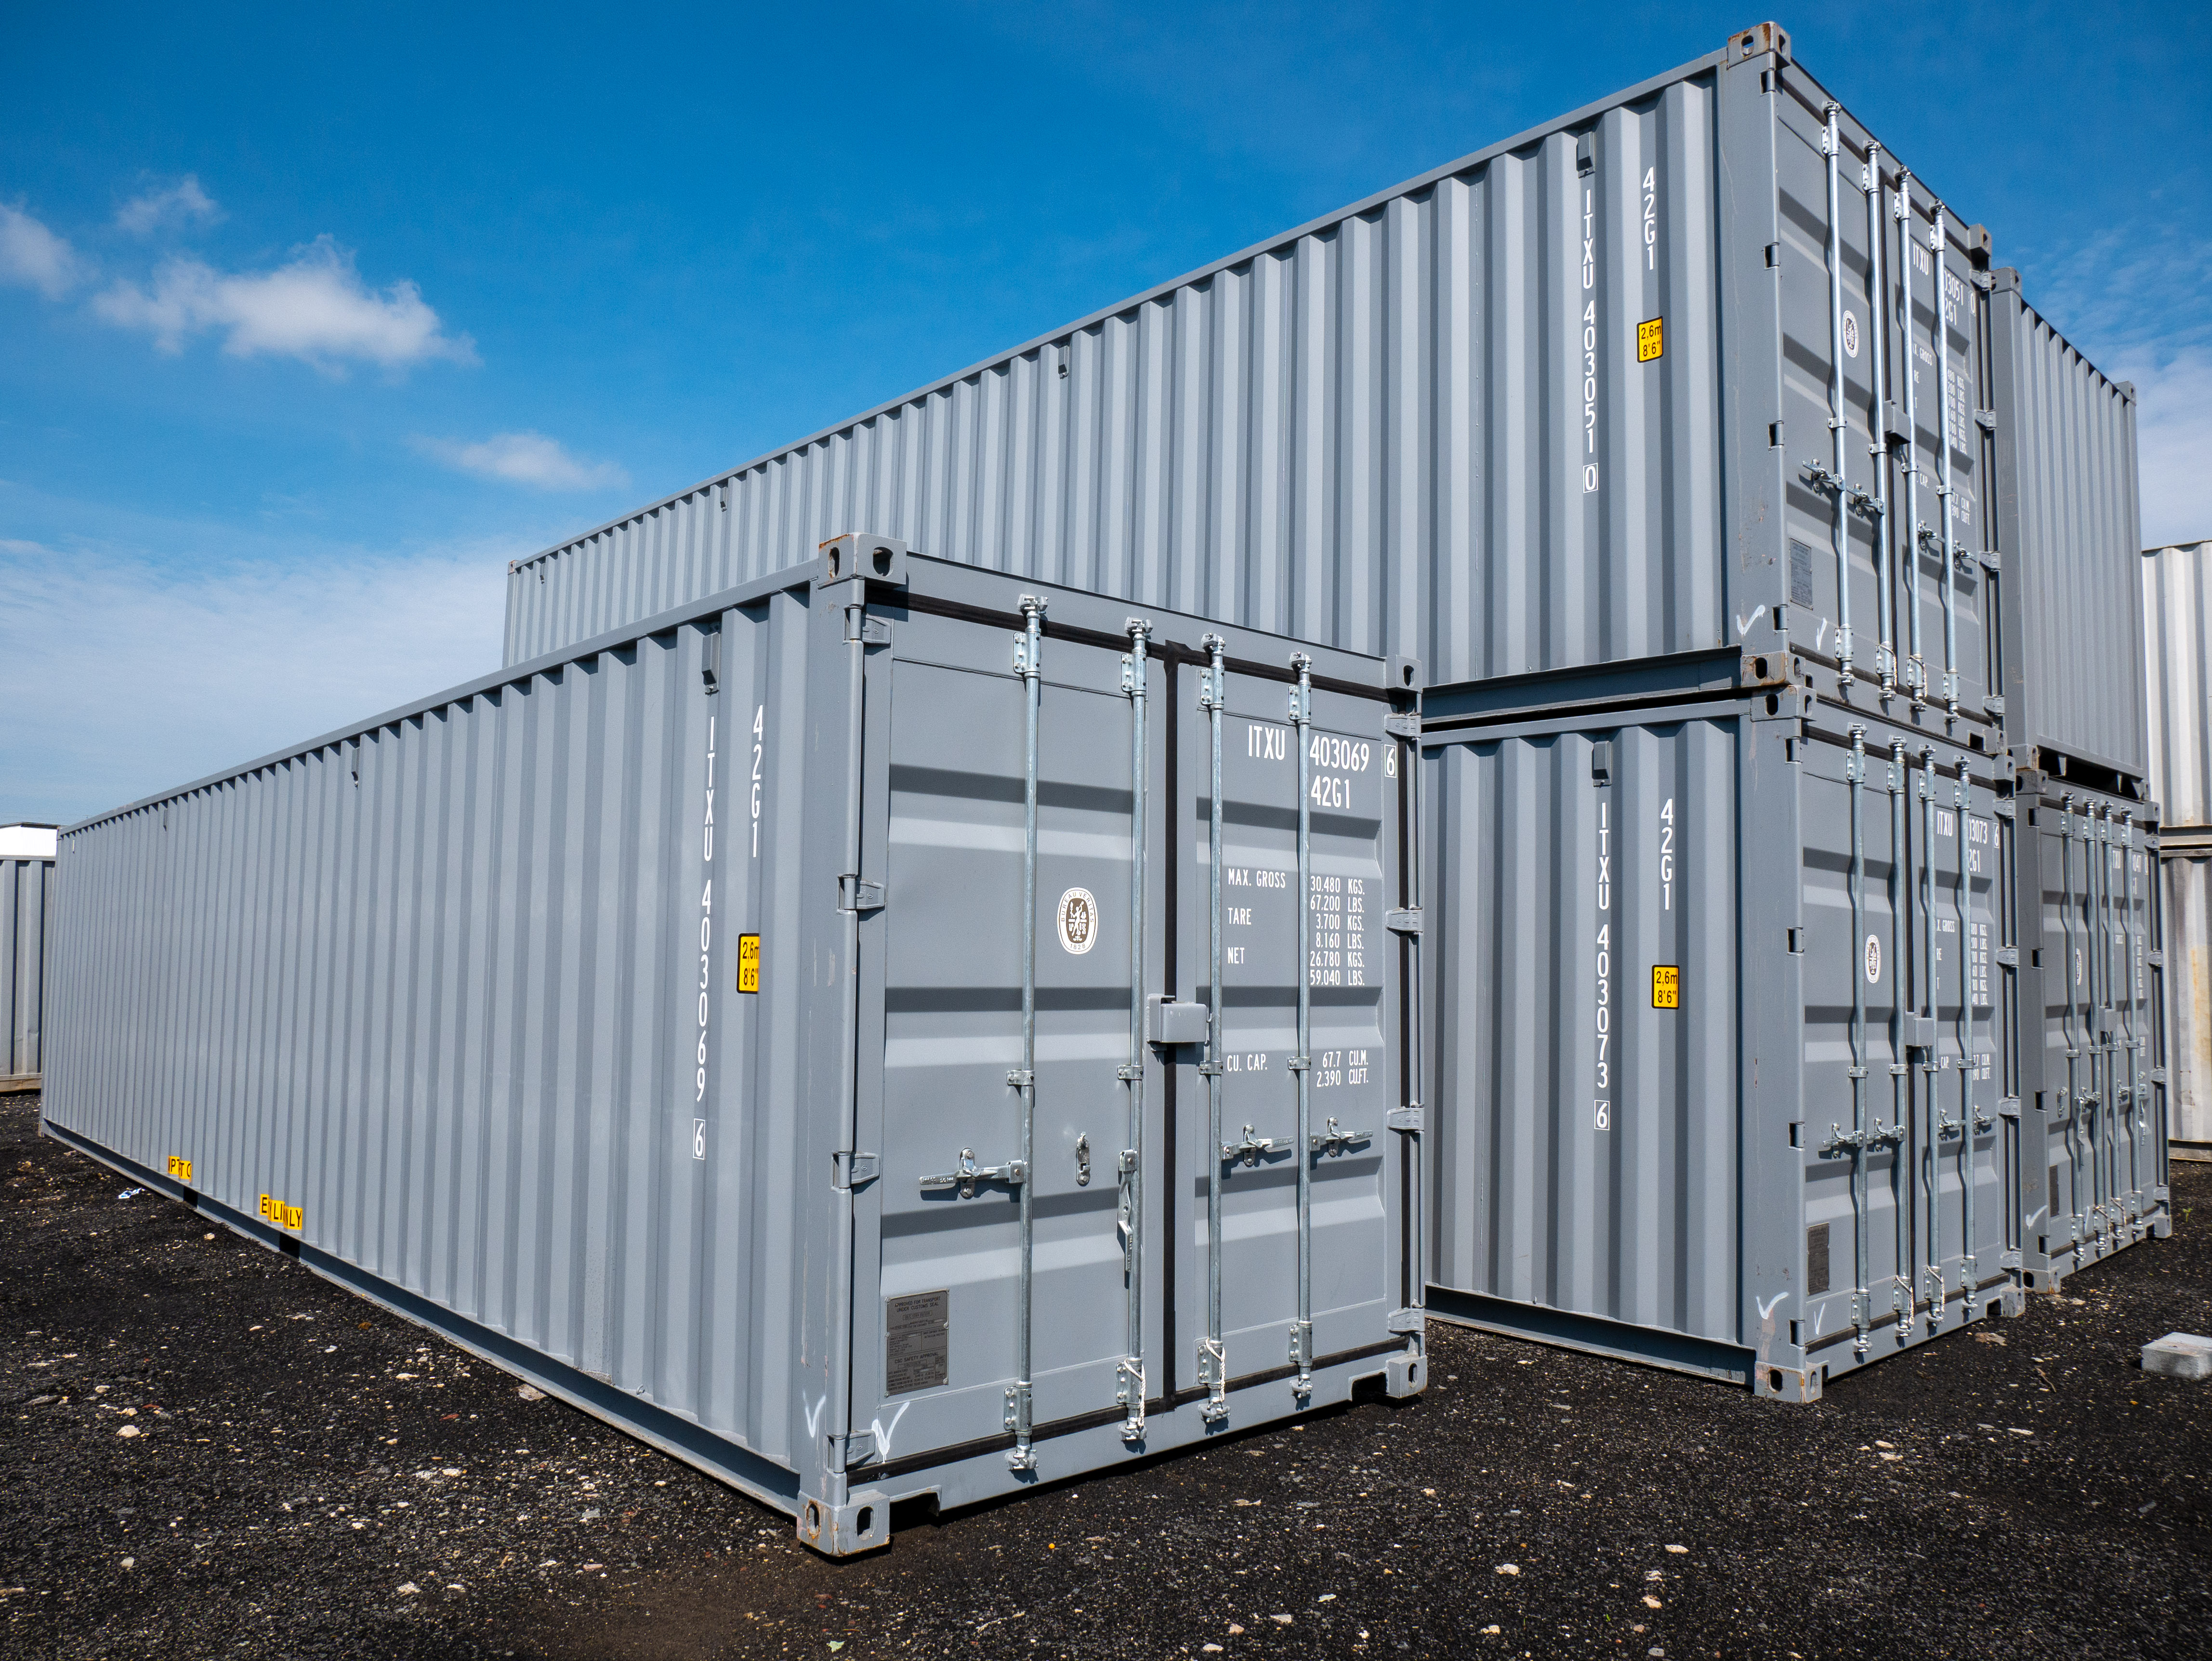 Wilmot Containers